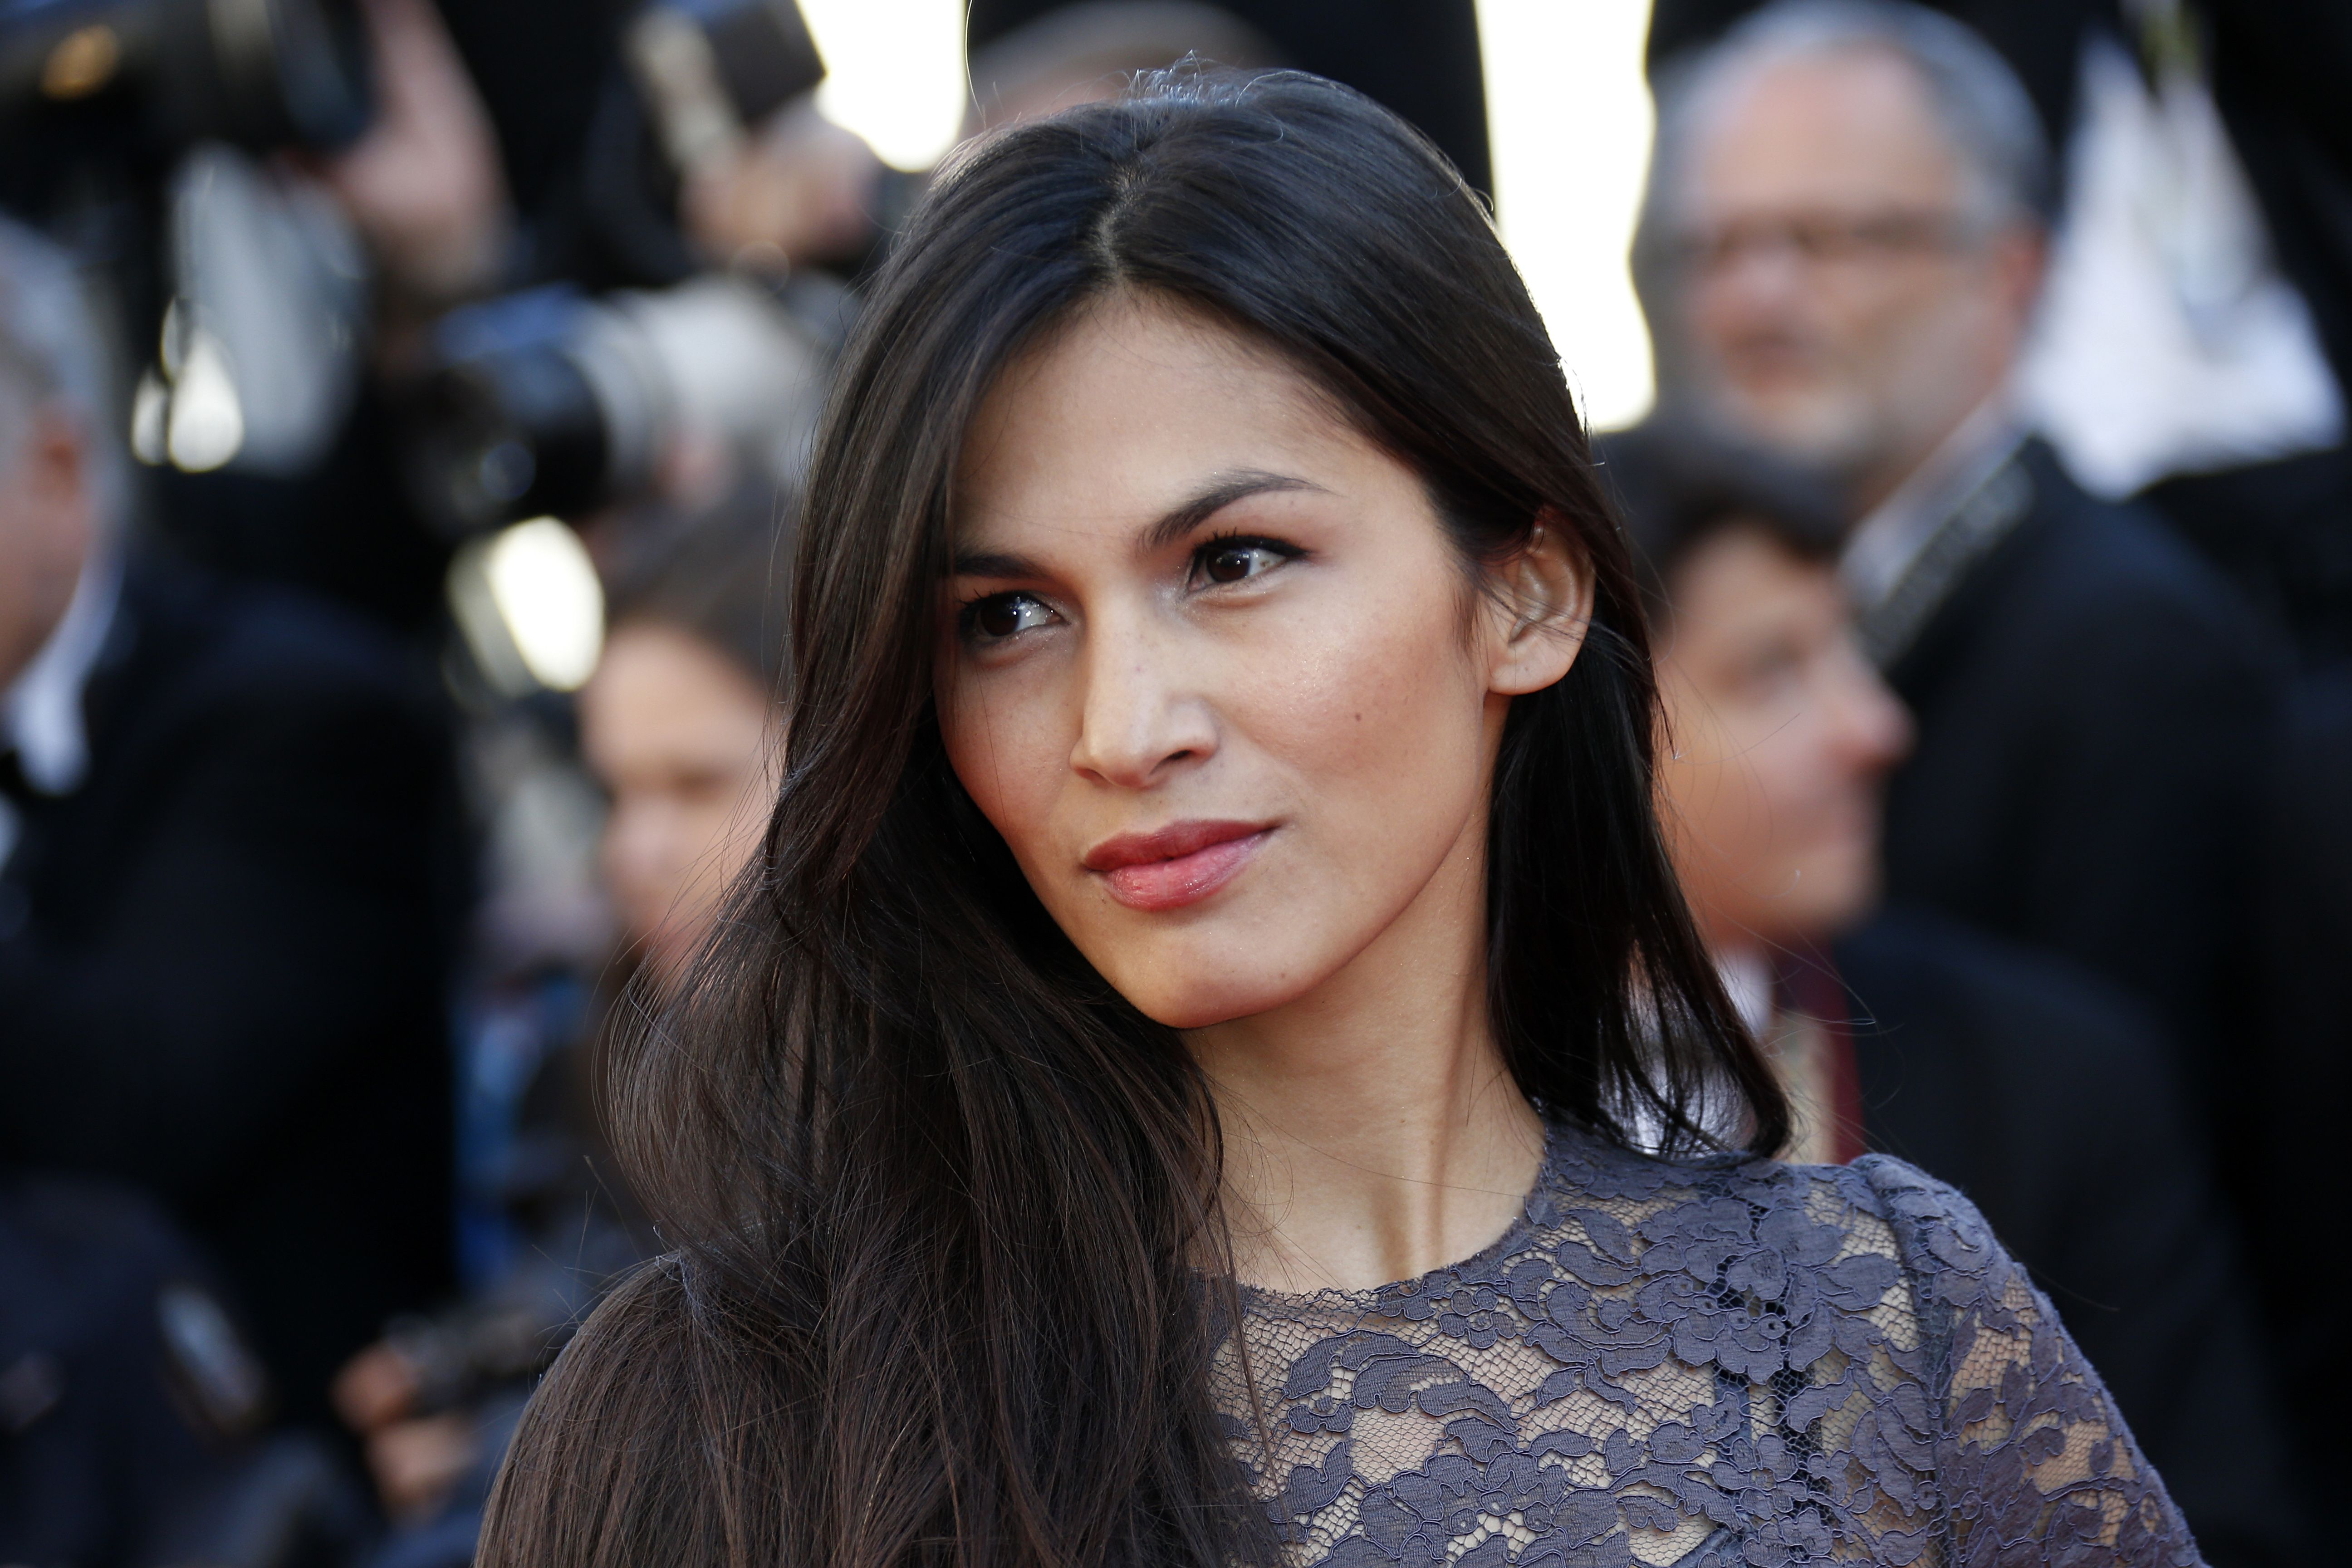 5184x3456 - Elodie Yung Wallpapers 11